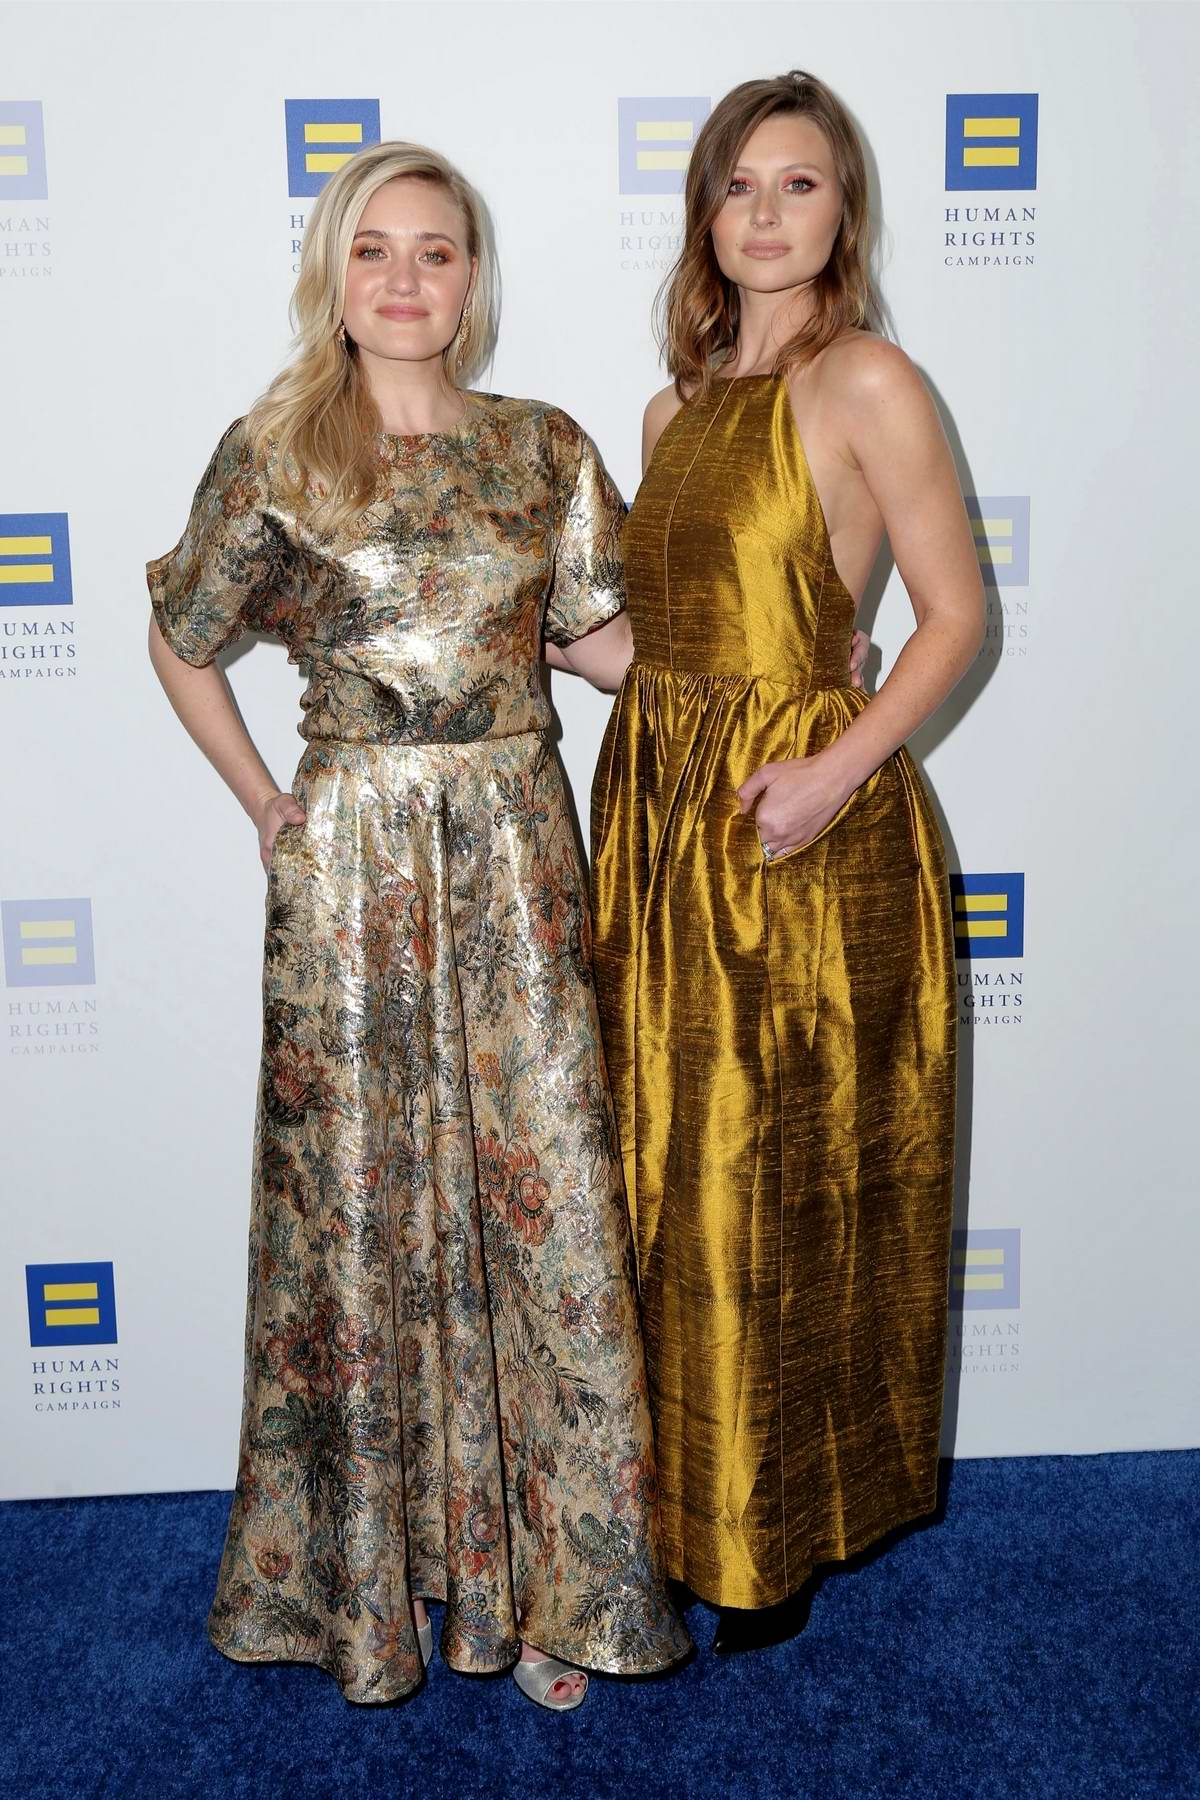 Aly and AJ Michalka attends The Human Rights Campaign 2019 Gala Dinner in Los Angeles